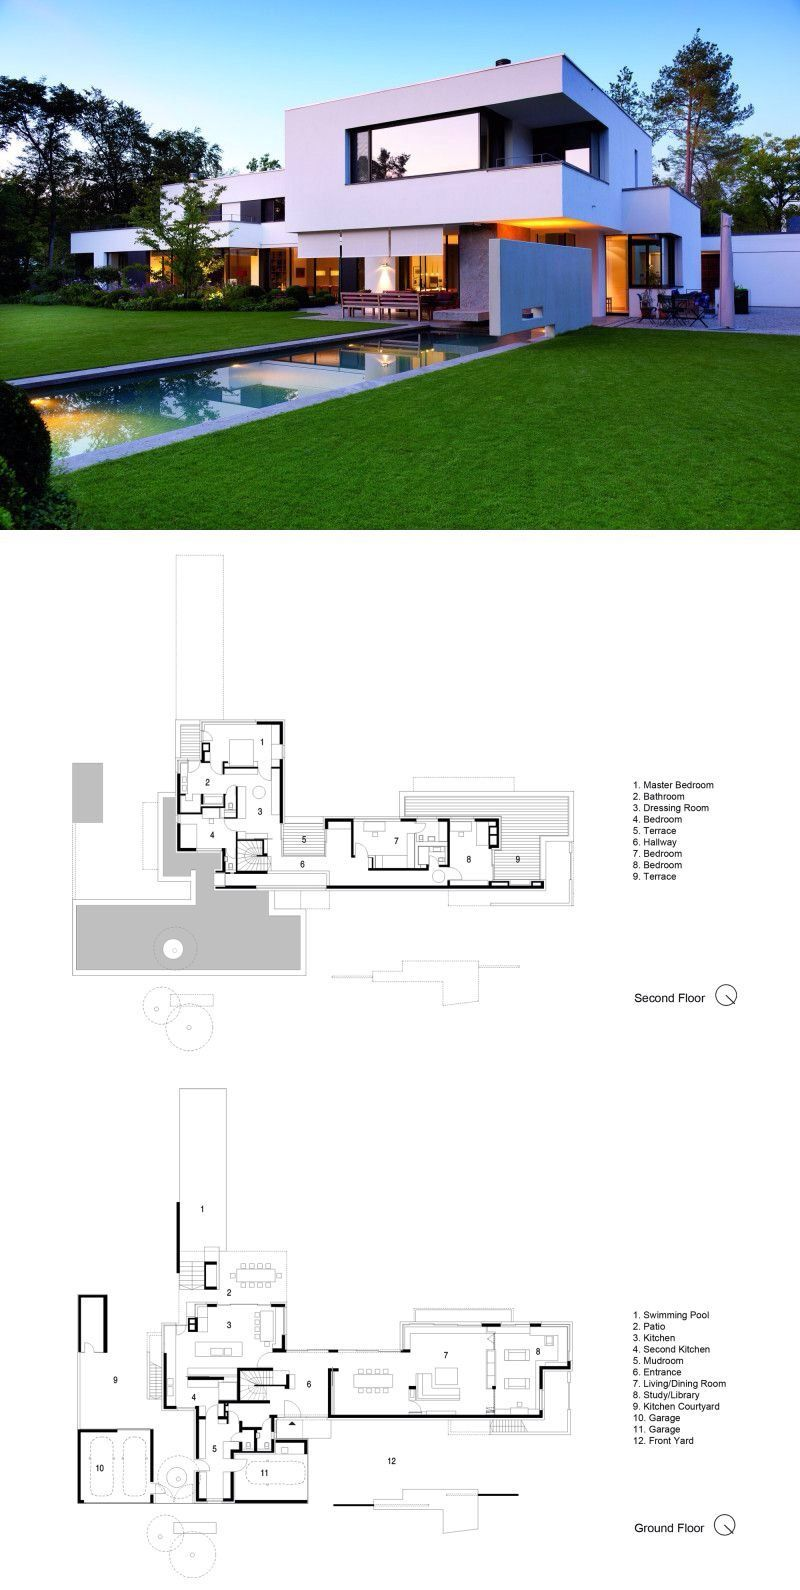 House Plans Germany In 2020 House Plans Mansion House Plans Mansion Floor Plan